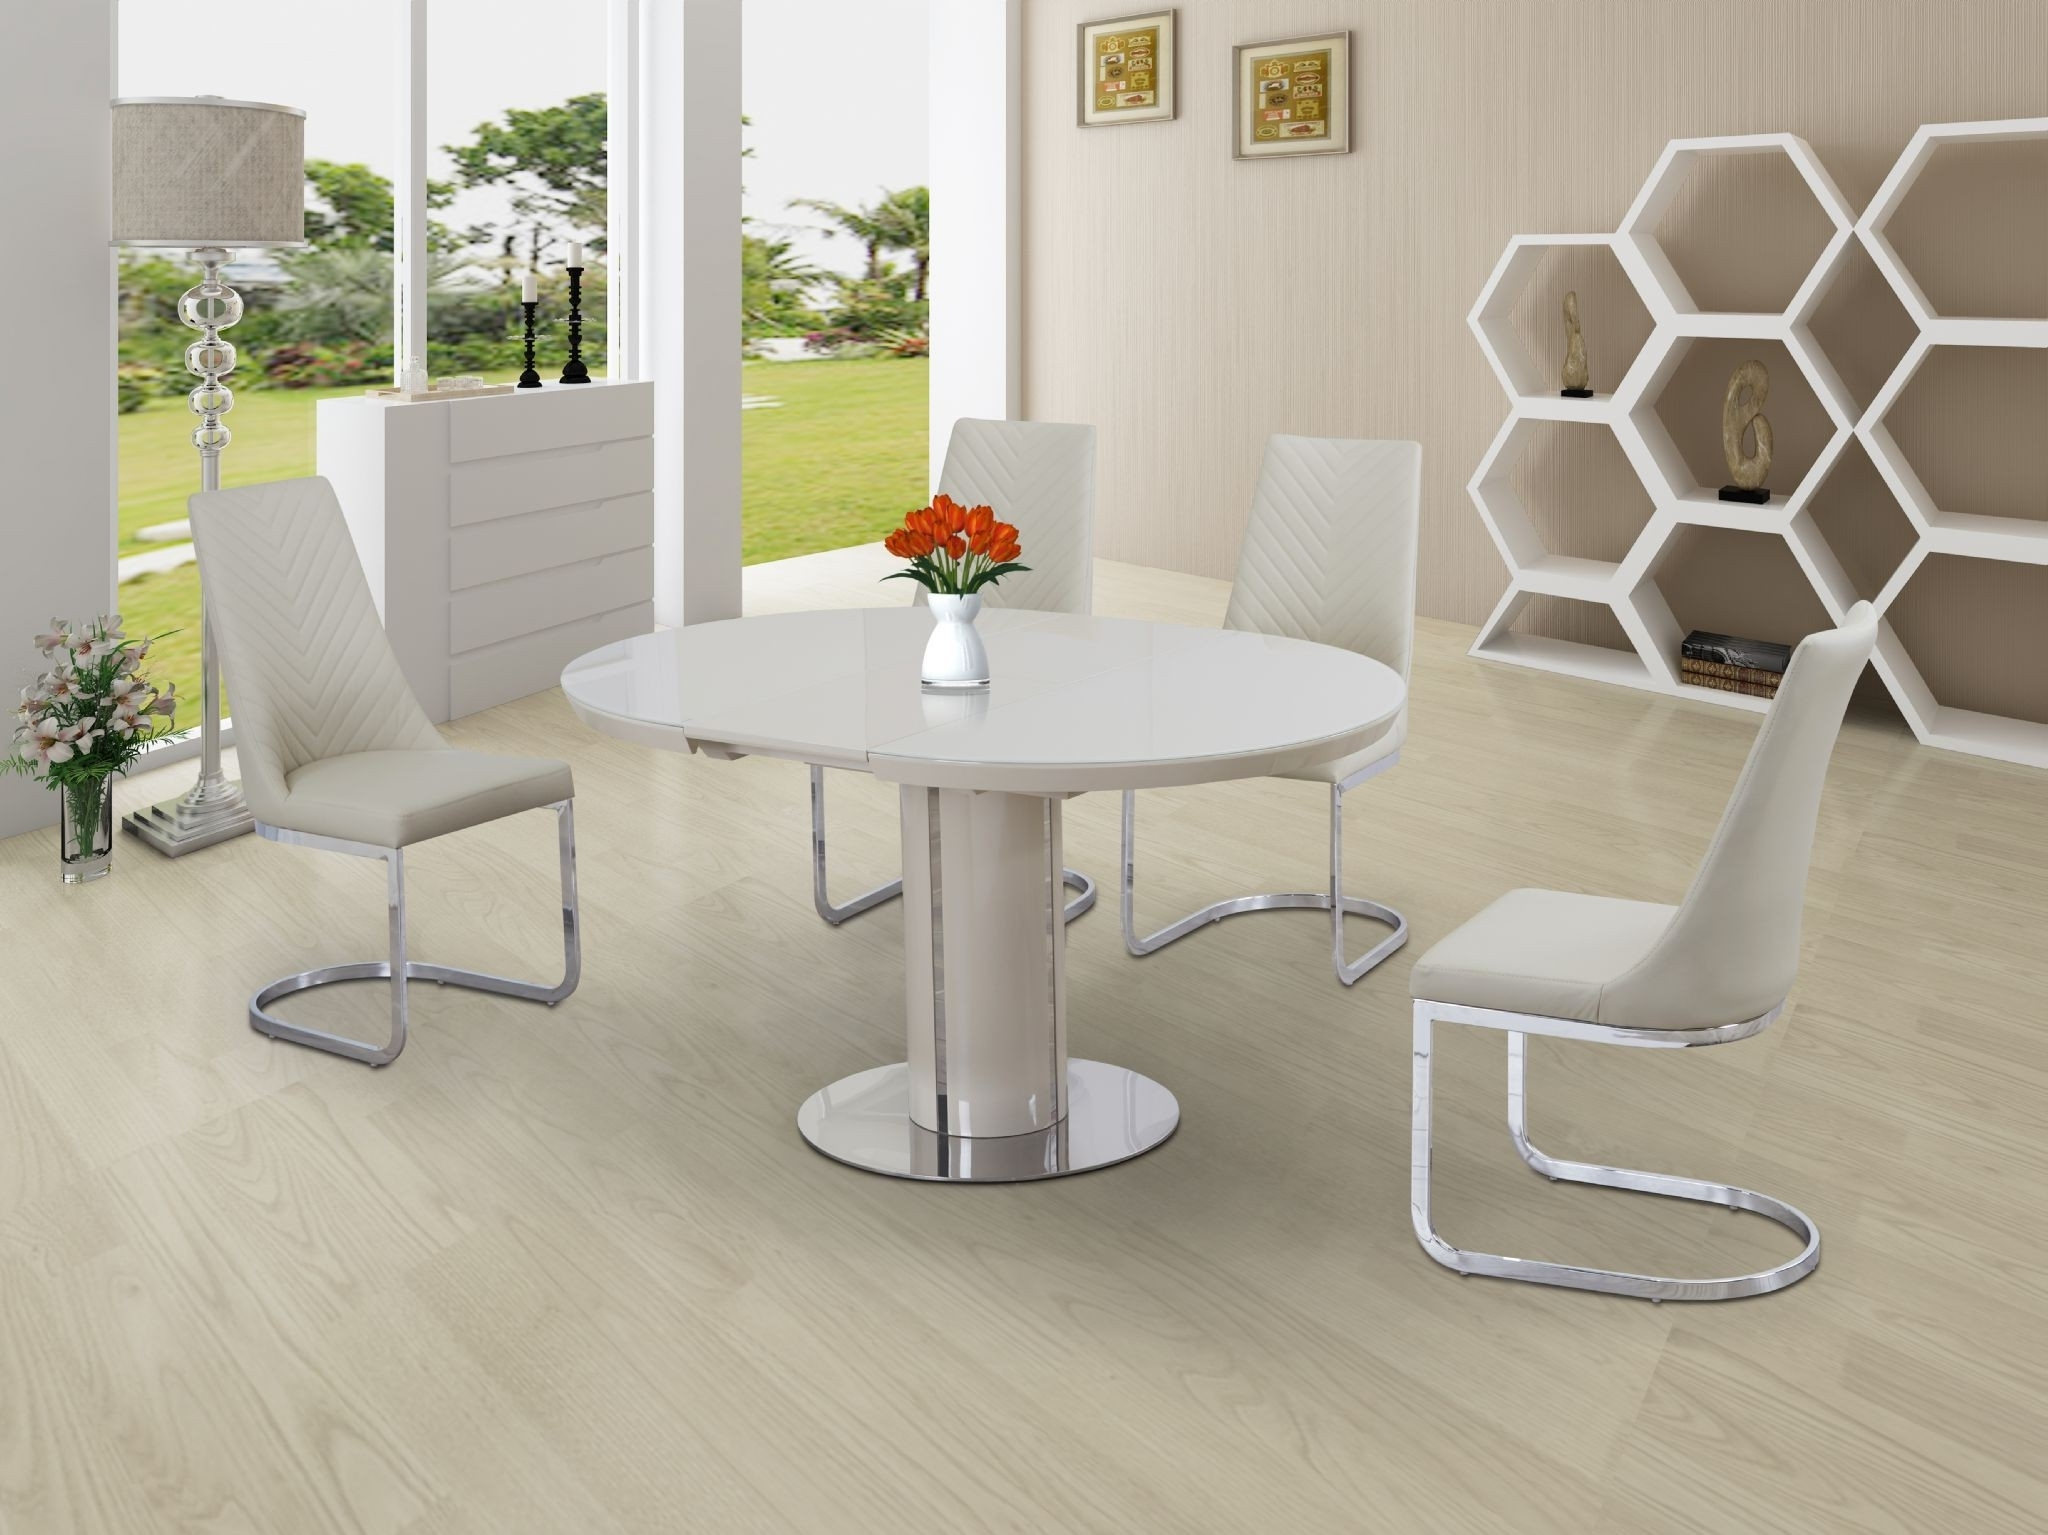 Best And Newest Buy Annular Cream High Gloss Extending Dining Table Inside Grey Gloss Dining Tables (Gallery 11 of 25)